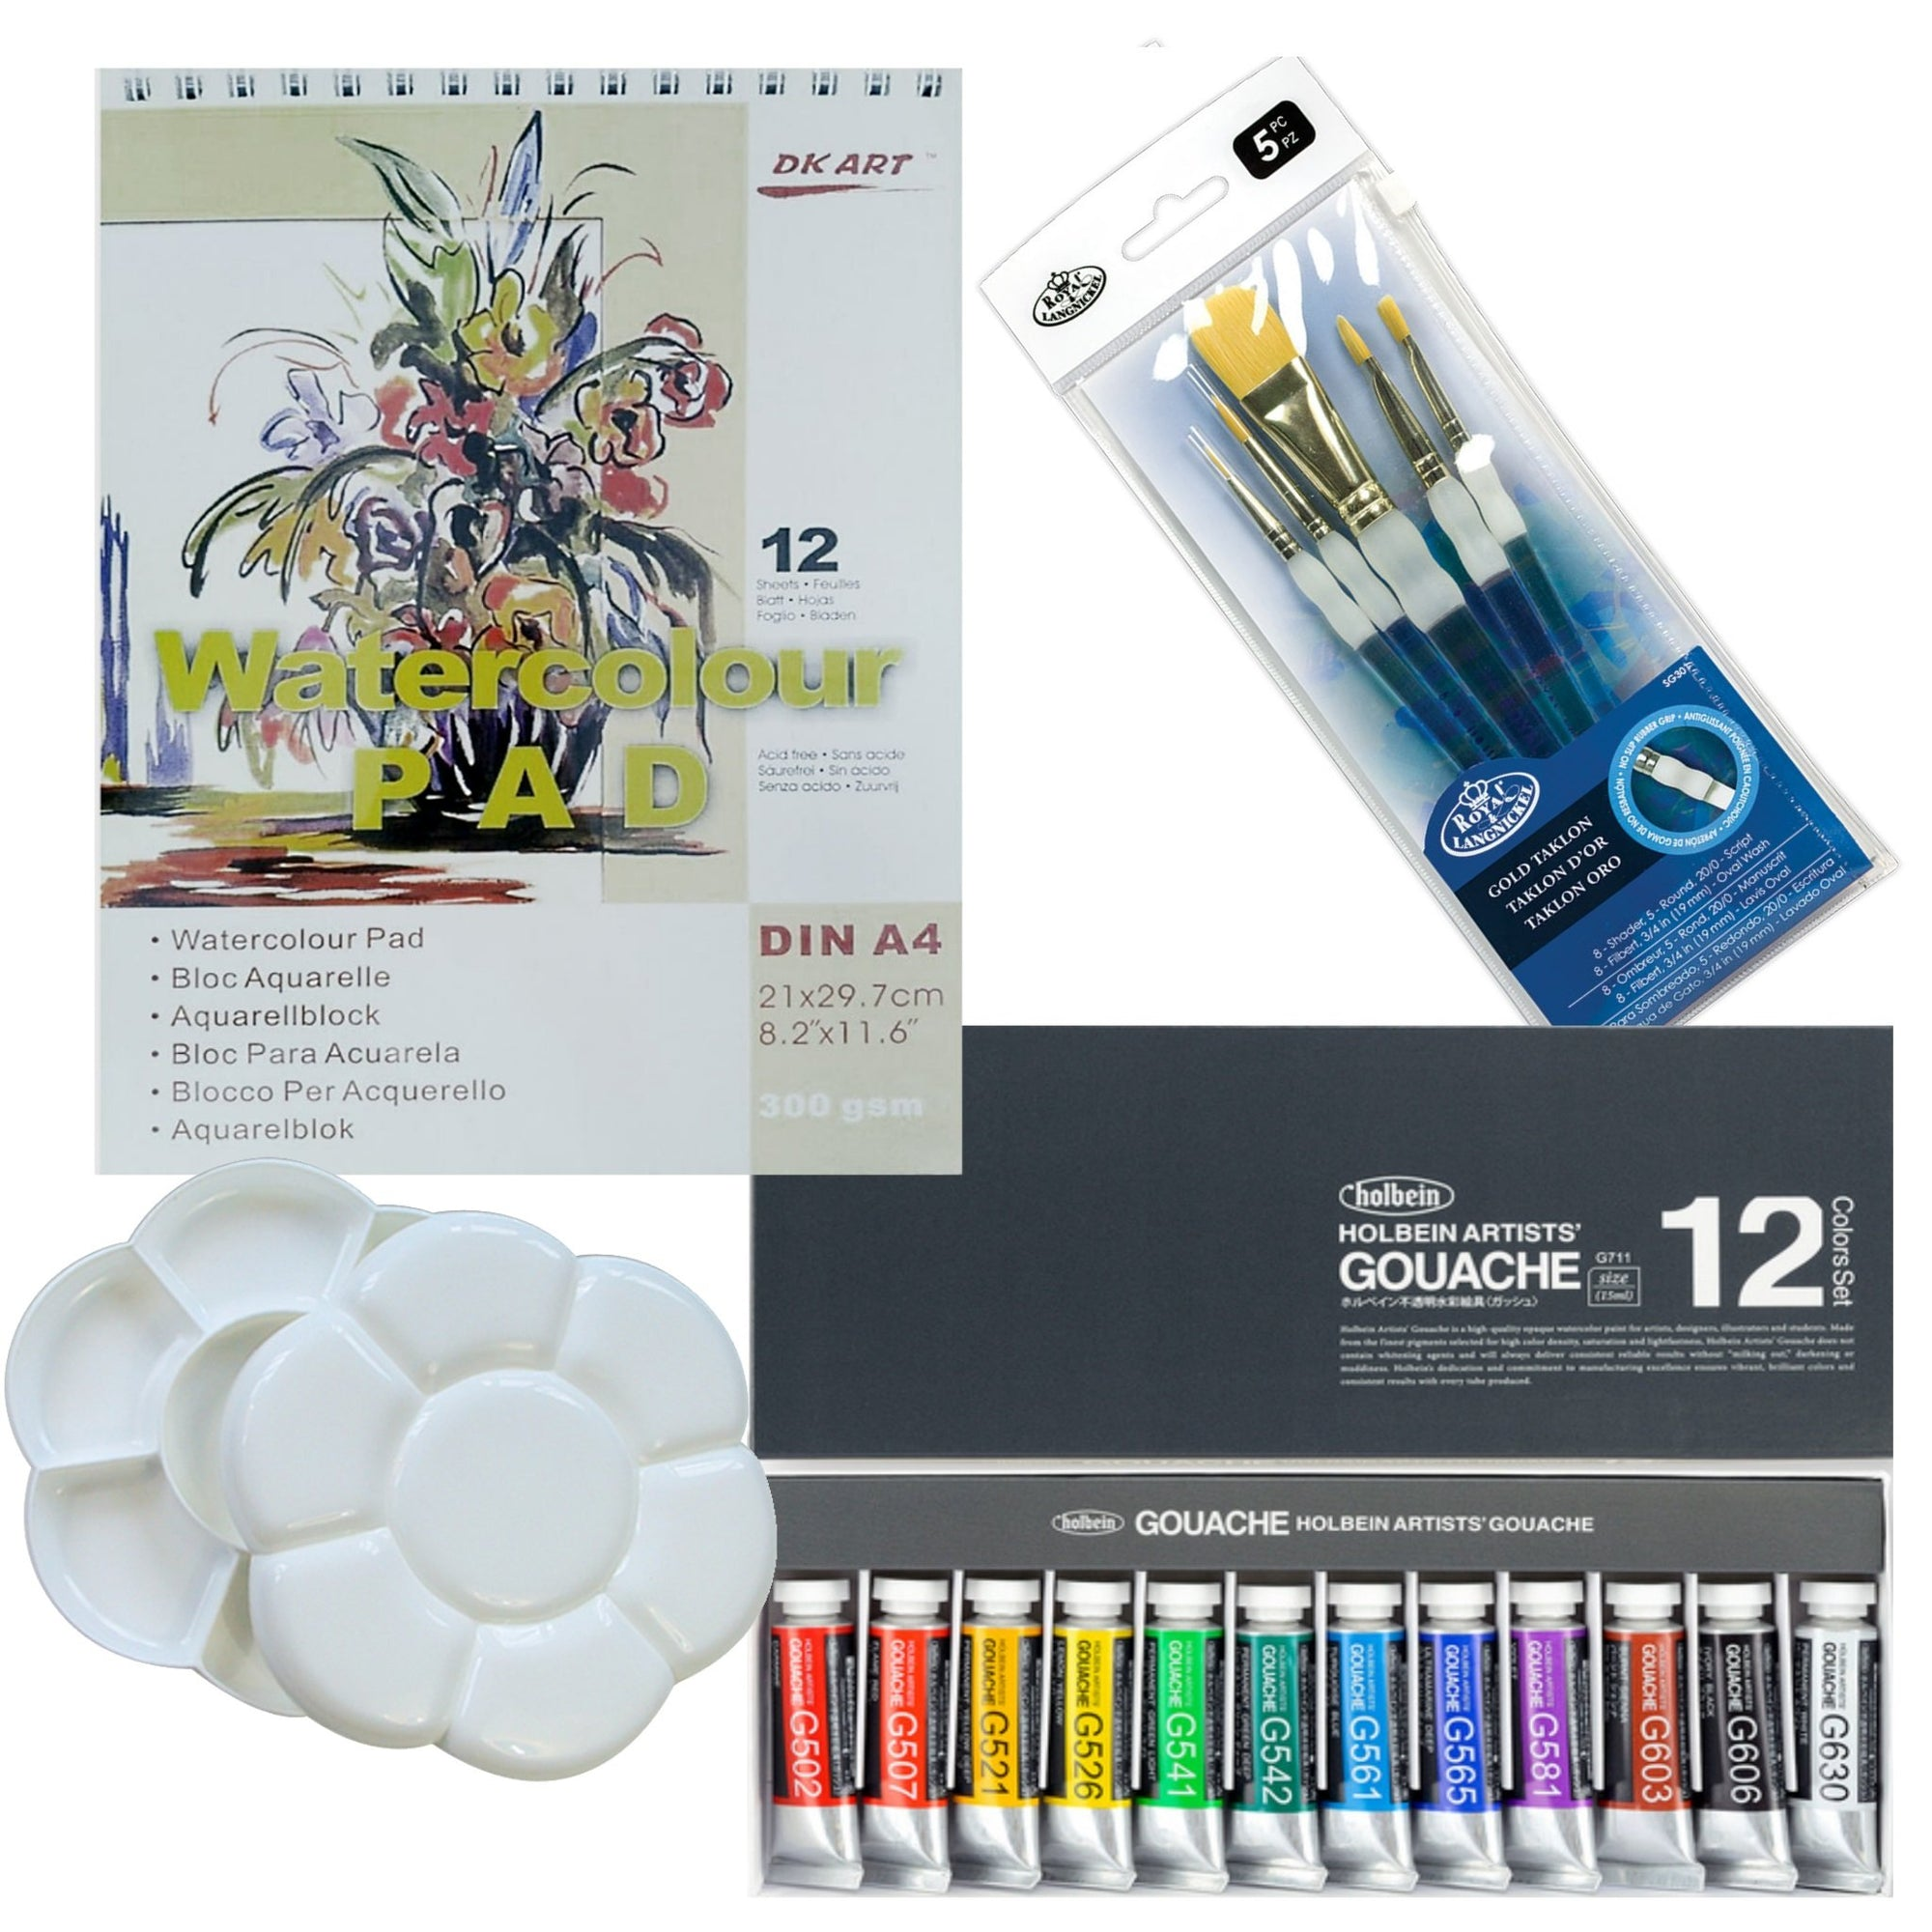 This beautiful set of Holbein Artist Designer Gouache includes everything you require to start painting:  12 x 5ml paint tubes Set of 5 brushes #8 flat, 3/4 & #8 filbert, round 20/0 & #5 1x Double-sided Flower Shaped Plastic Palette - clicks together for easy transport 1x A4 Watercolour Pad - 300gsm wire bound, made from 100% wood pulp.